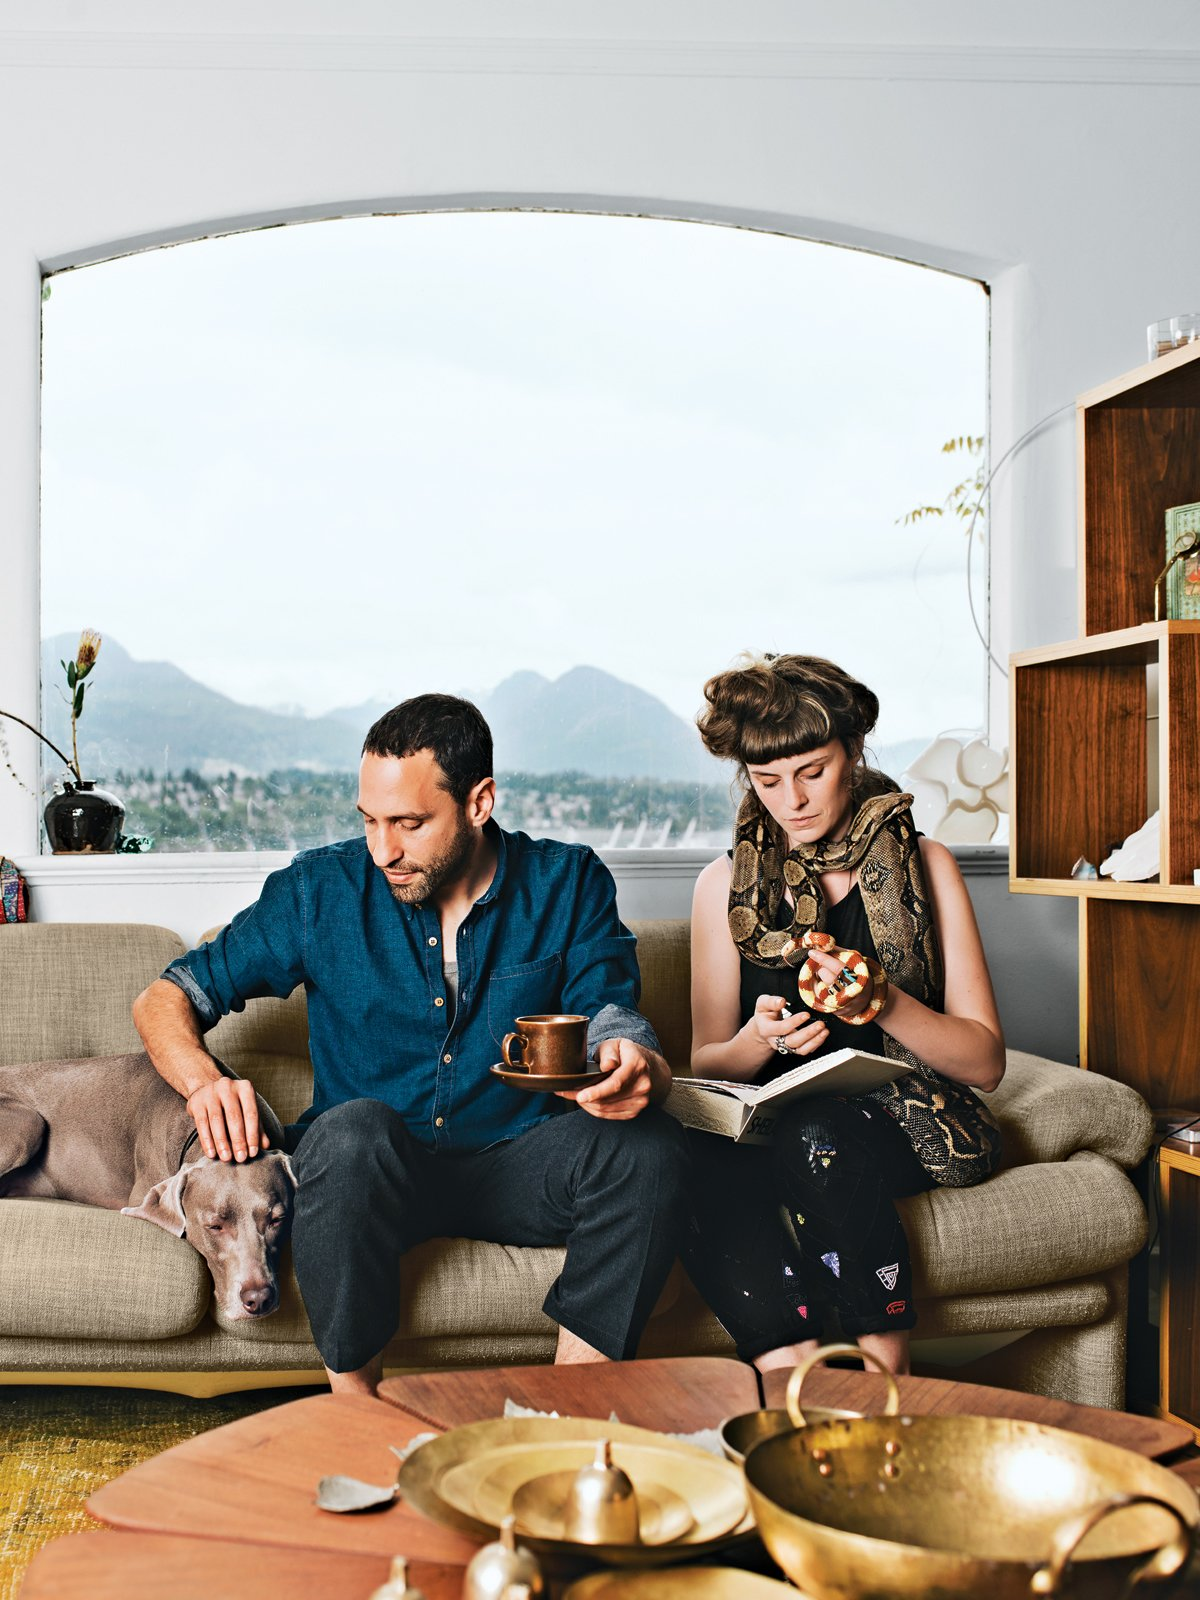 """Living Room, Sofa, Coffee Tables, Bookcase, Shelves, Storage, and Rug Floor In the living room of their Vancouver home, Omer Arbel and Aileen Bryant sit on a Coronado sofa by Afra and Tobia Scarpa for B&B Italia. They are joined by their Weimaraner, Bowie, boa constrictor, Picasso, and milk snake, Legs.  """"I have a casual approach to prototyping that involves our day-to-day life. I am always tinkering, and I have lots of transformers to run electricity through things, but Aileen lives with me now, so I have to be respectful. Before she moved in it was like a total madhouse; now I can't pour concrete in the kitchen. It is a collaboration in a sentimental sense. This work is my life, and the objects are my objects, but how they are arranged and the flow of each room are something we've created together here.""""  127+ Inspiring Interior Ideas from Love Animals? This House is for You"""